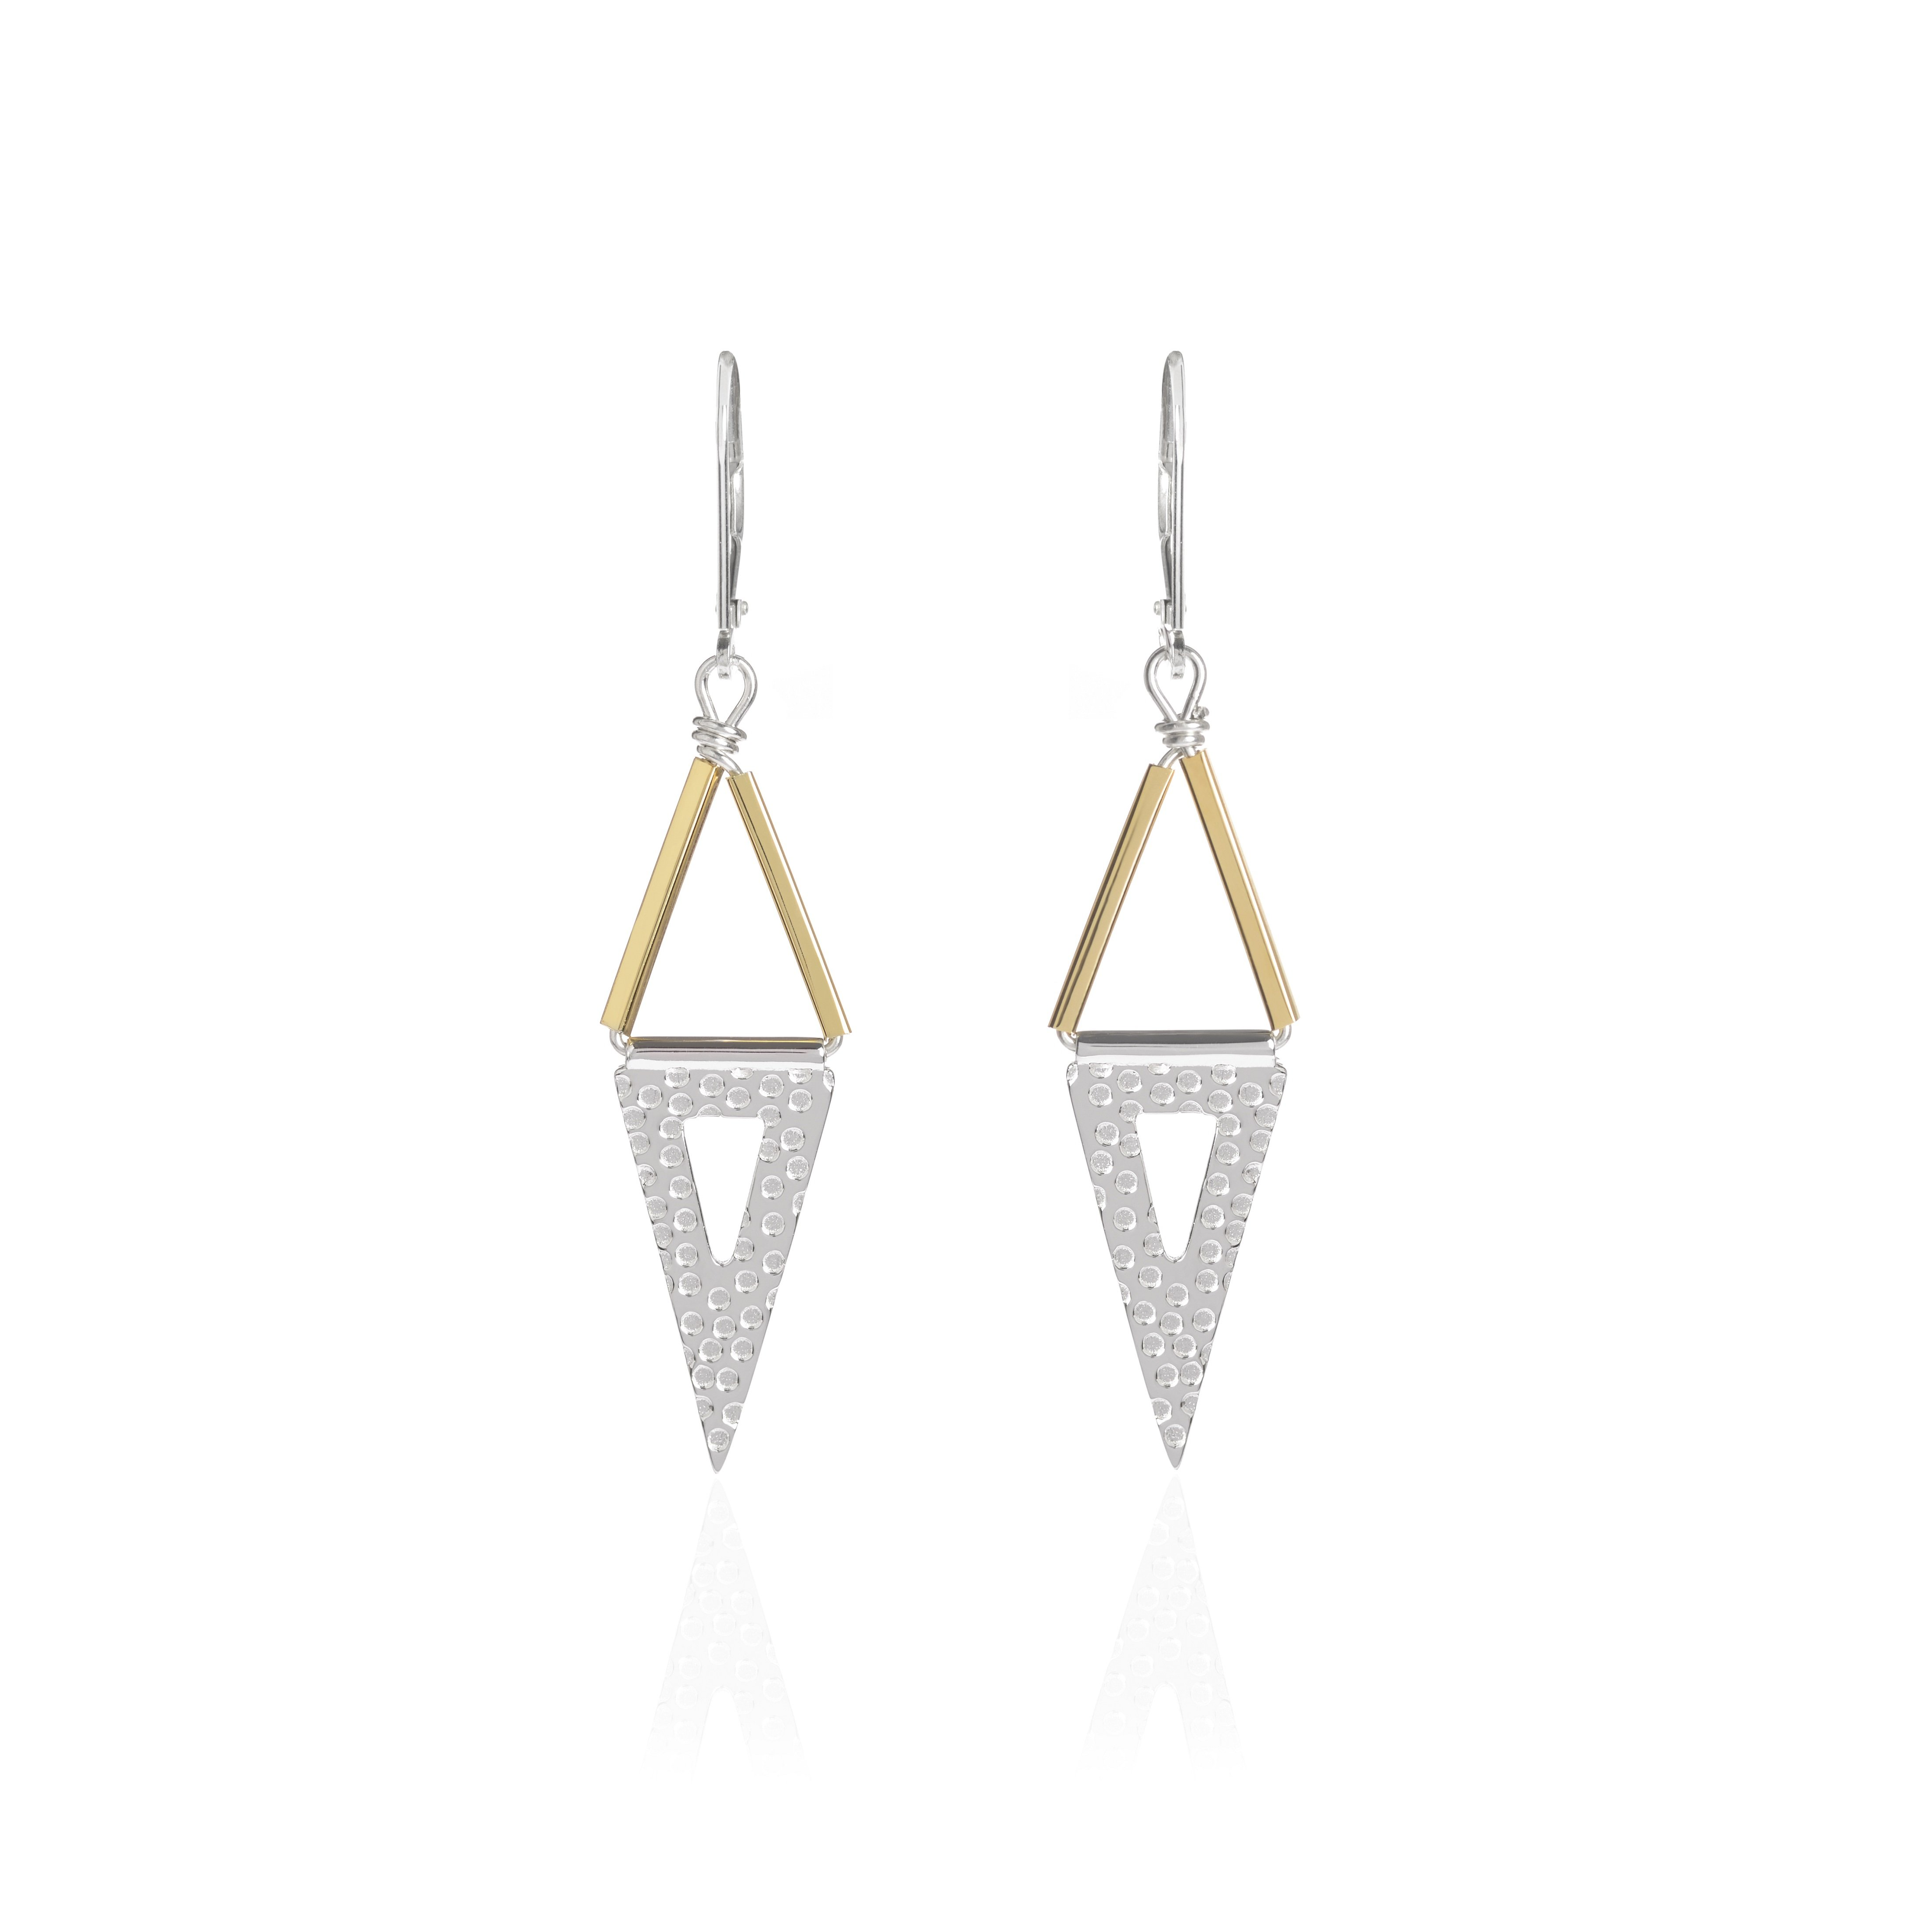 Carry Me, Silver and Gold Earrings by Sally Lane Jewellery on curated-crowd.com